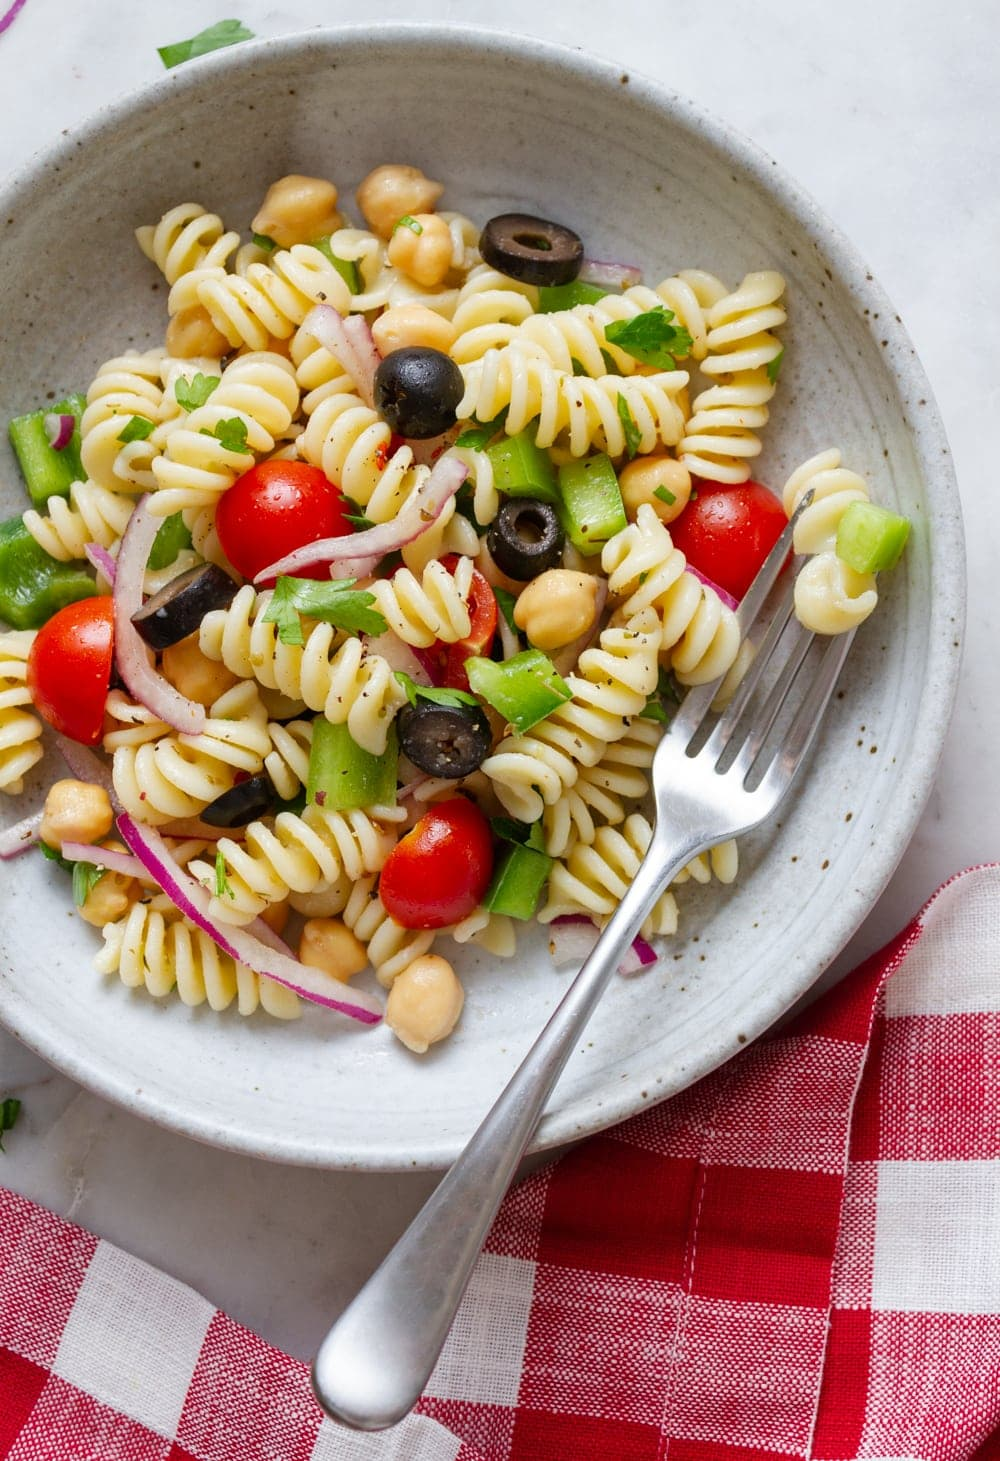 Quick Easy Vegan Pasta Salad The Simple Veganista